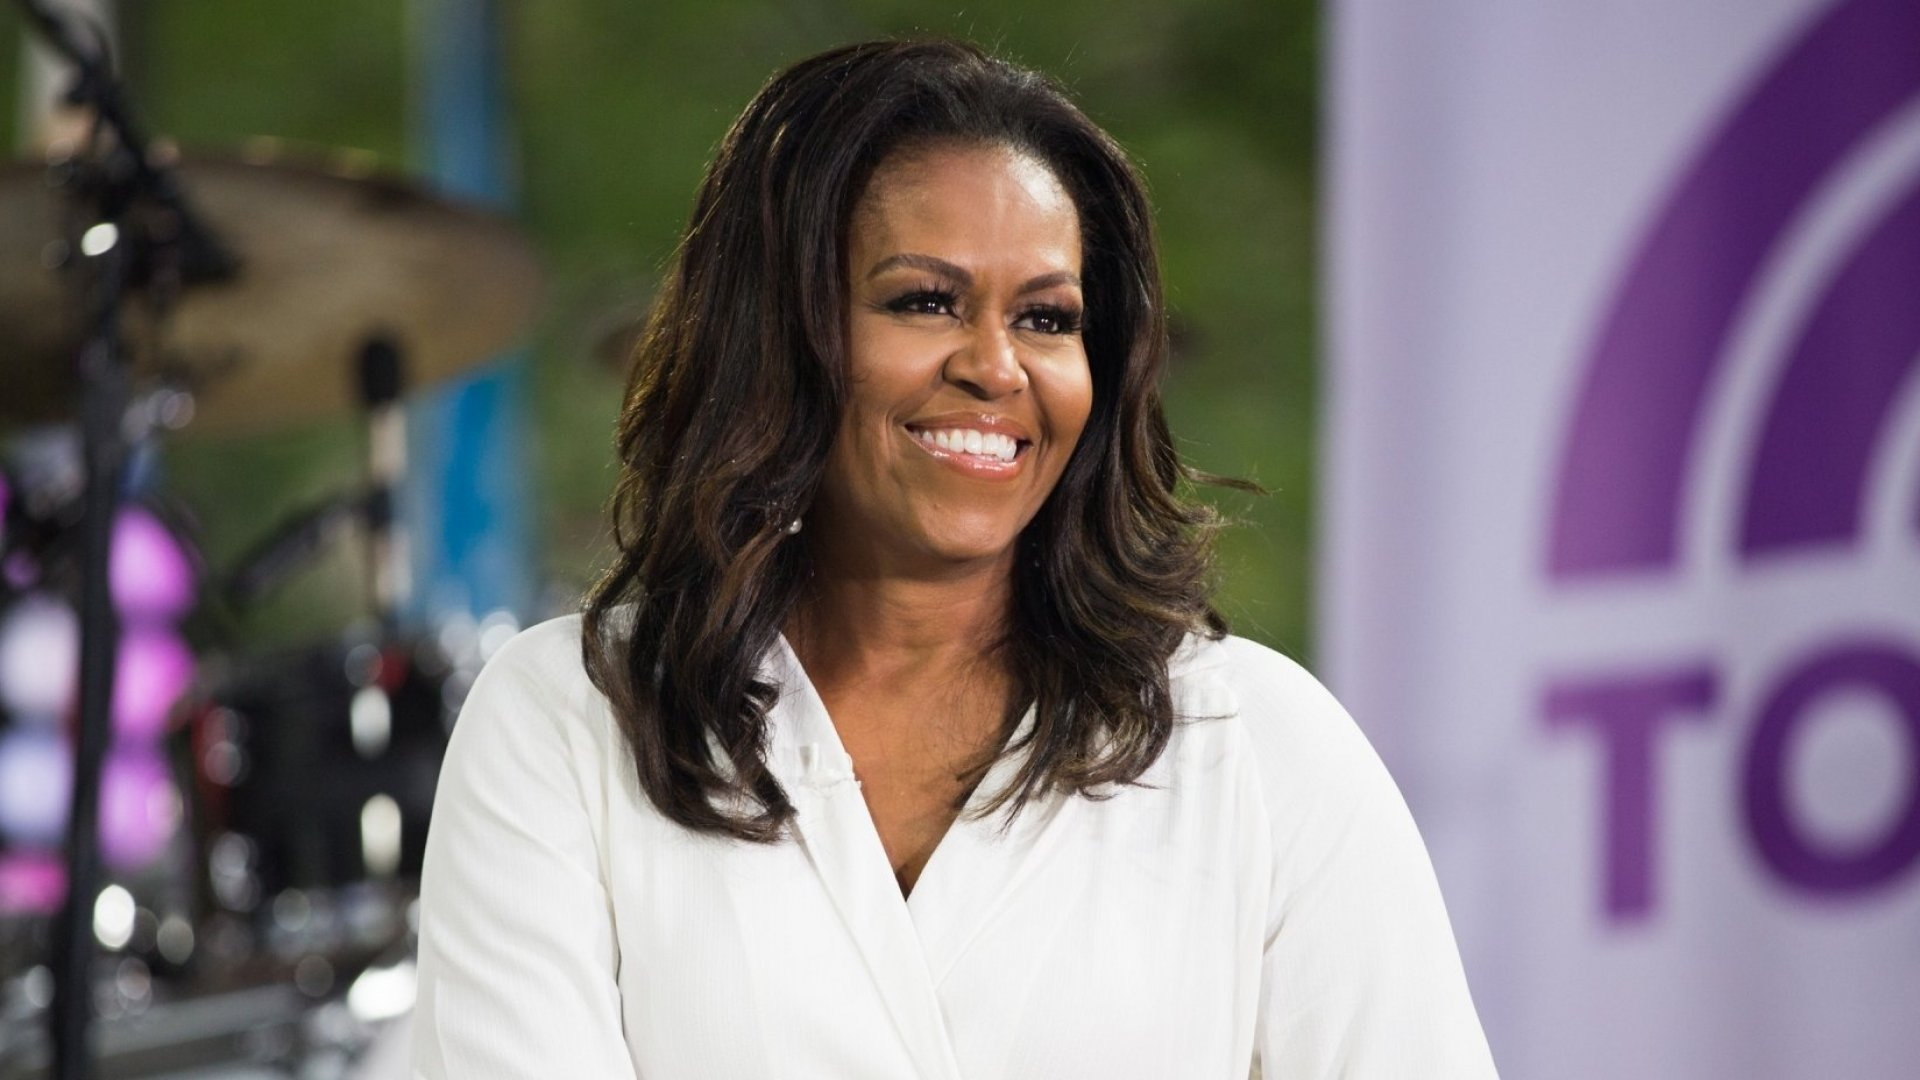 Michelle Obama Just Said 'Lean In' Doesn't Work. Here's the Study That Proves She's Right